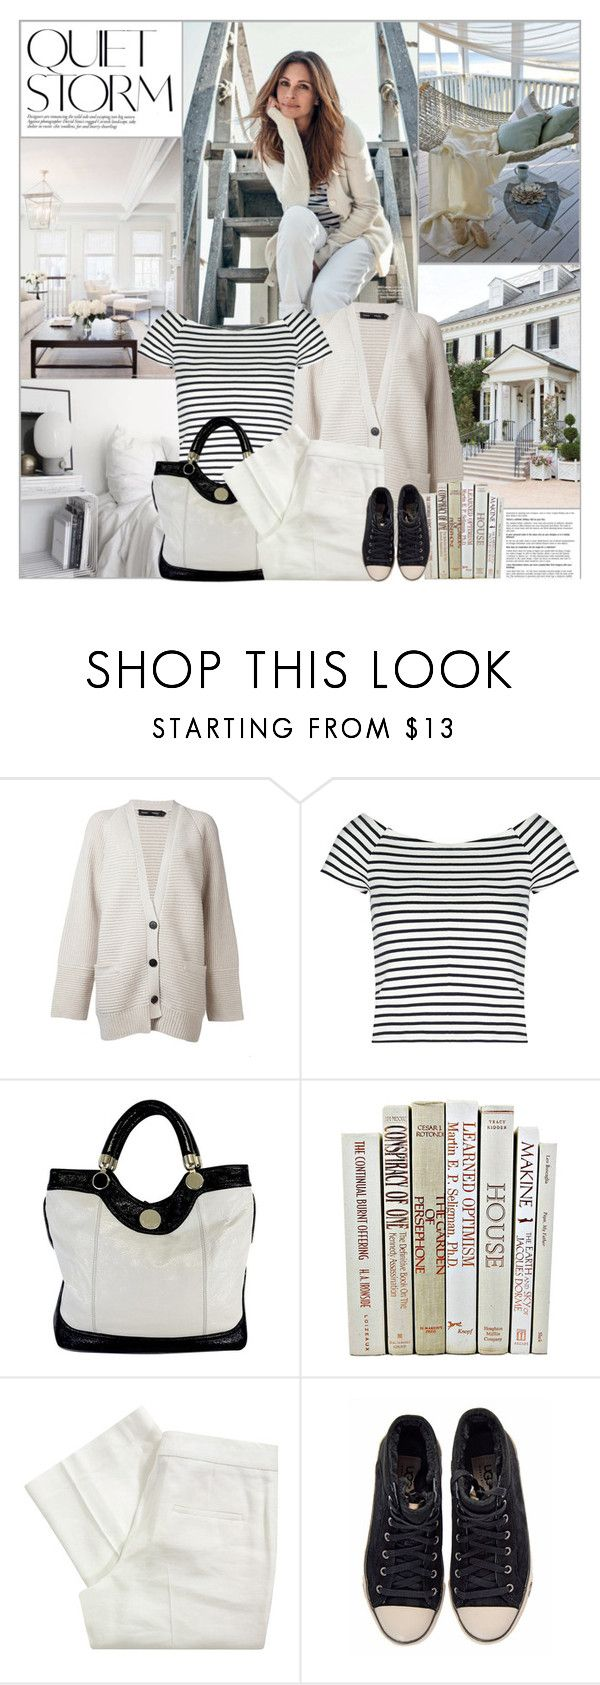 """""""Quiet Storm"""" by kittyfantastica ❤ liked on Polyvore featuring Proenza Schouler, Lipsy, Jill Stuart, Joseph and UGG Australia"""